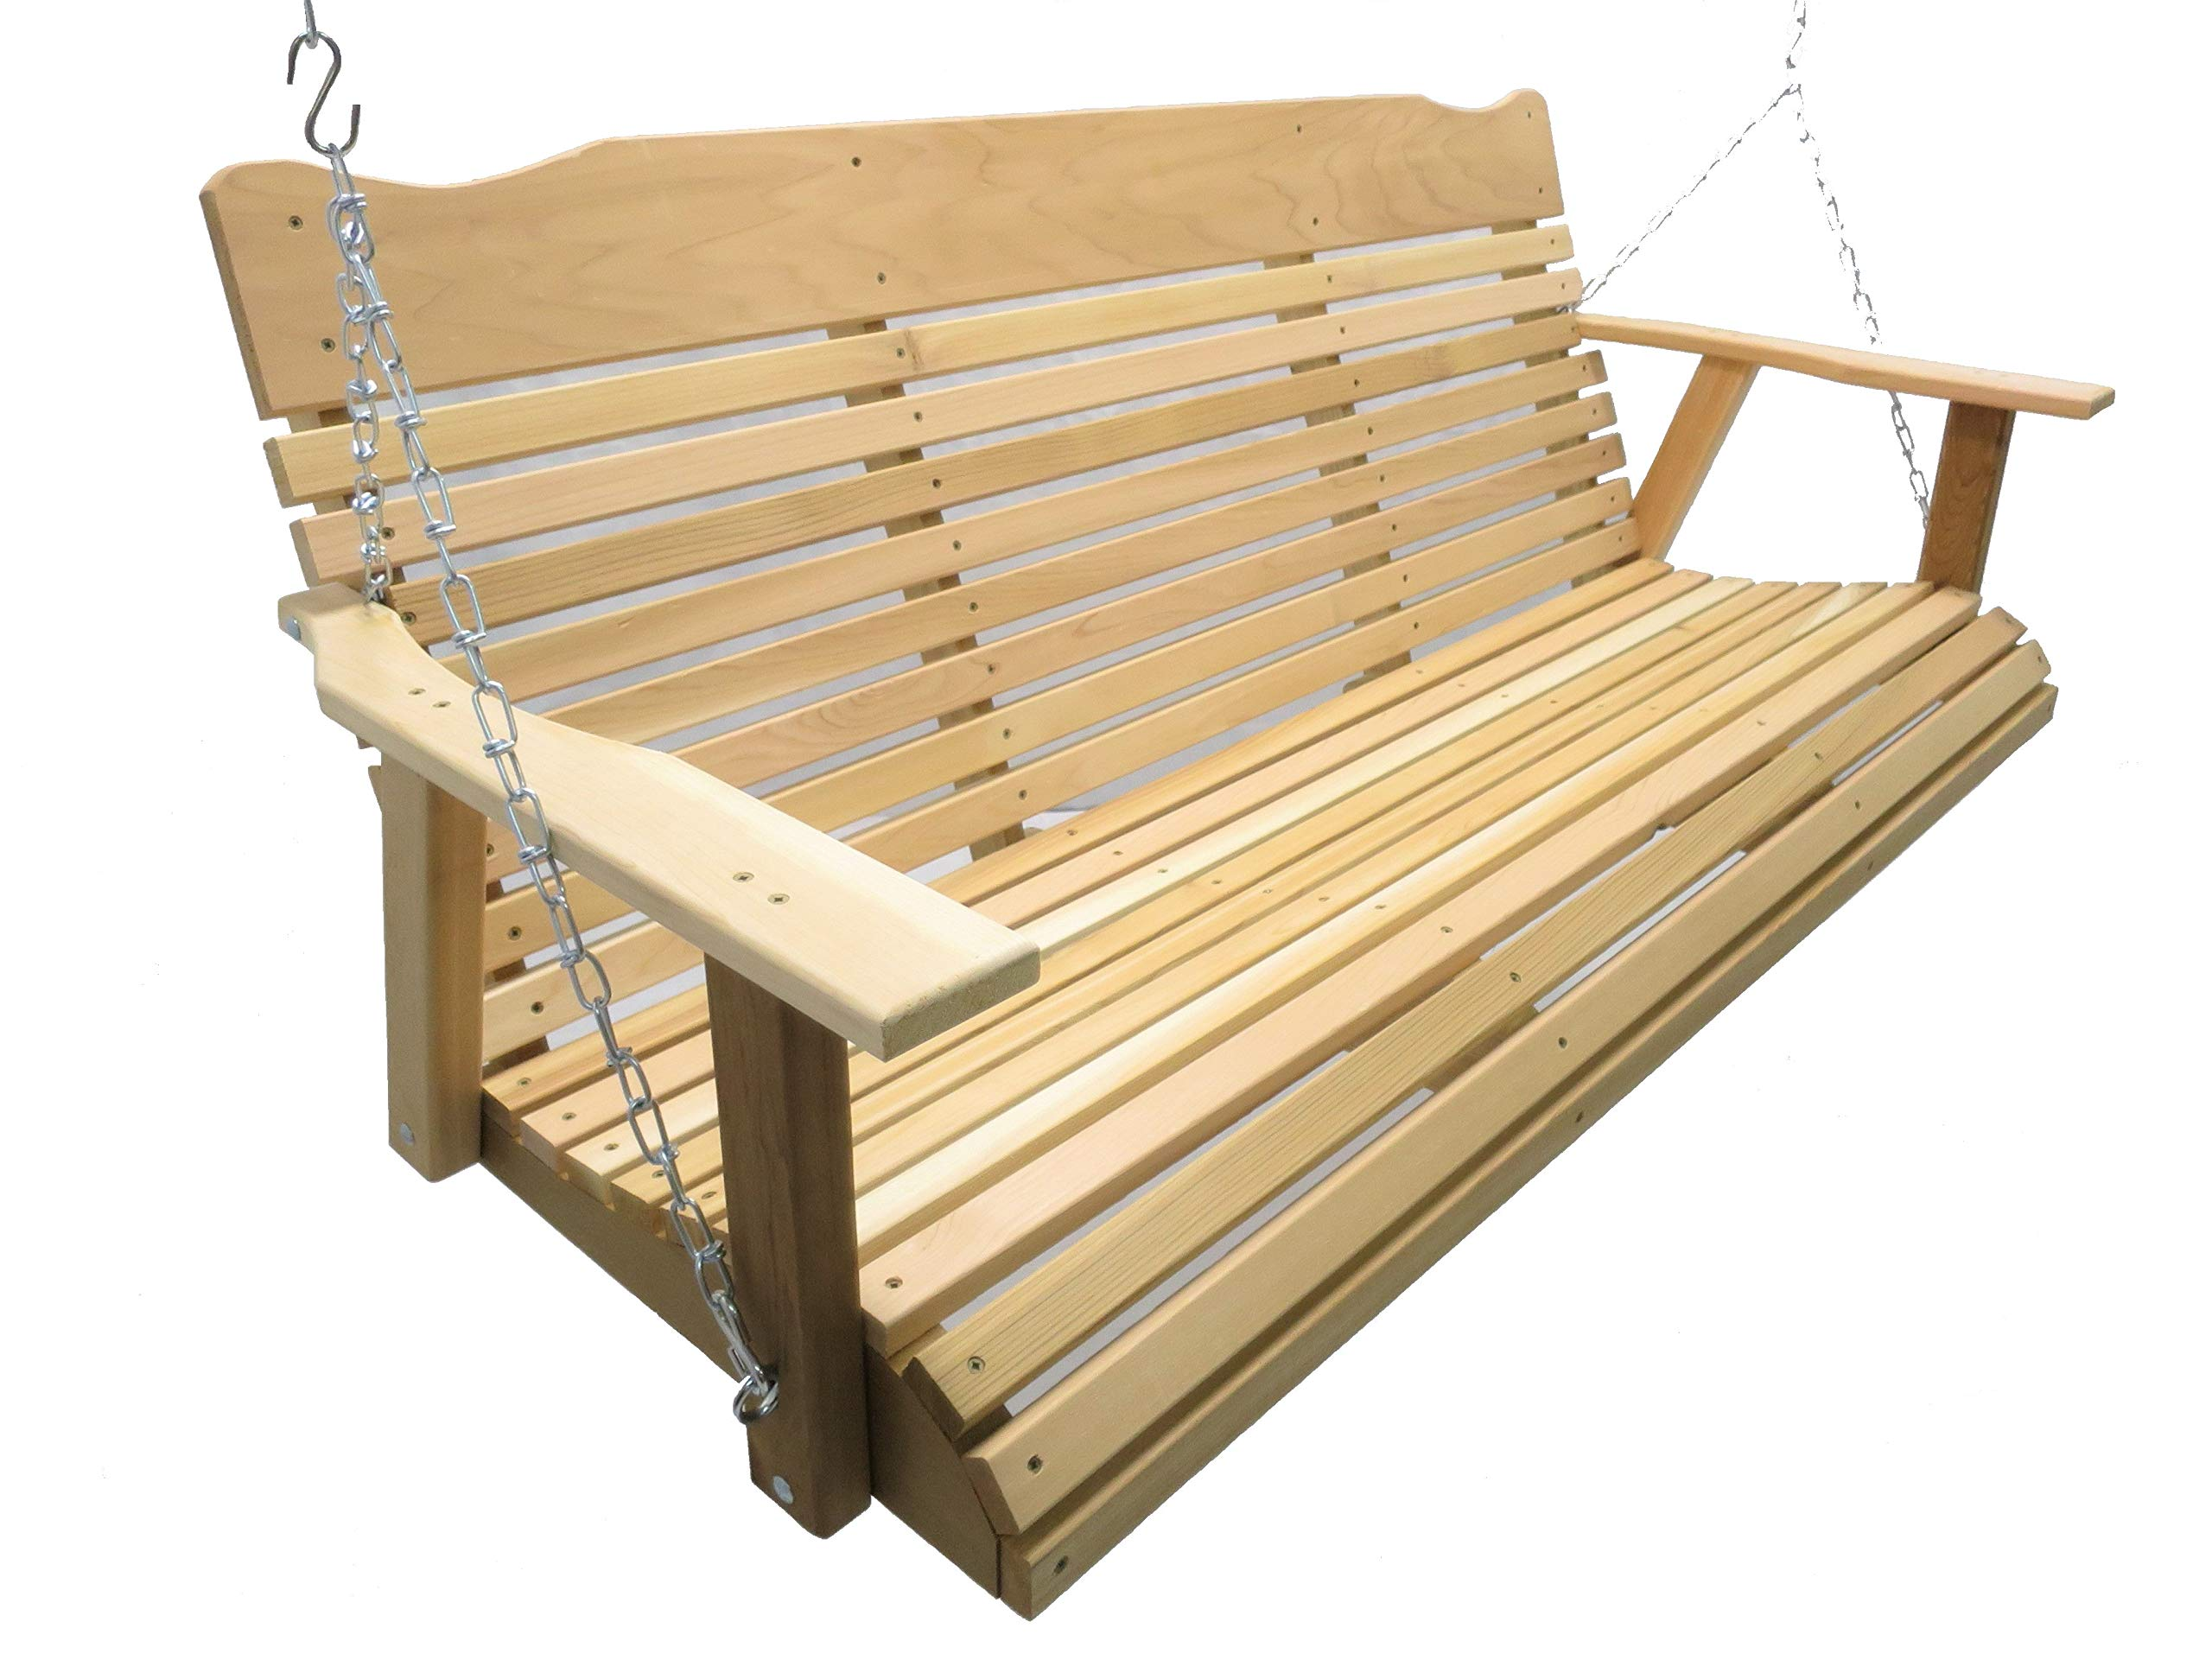 Kilmer Creek 5' Natural Cedar Porch Swing, Amish Crafted - Includes Chain & Springs